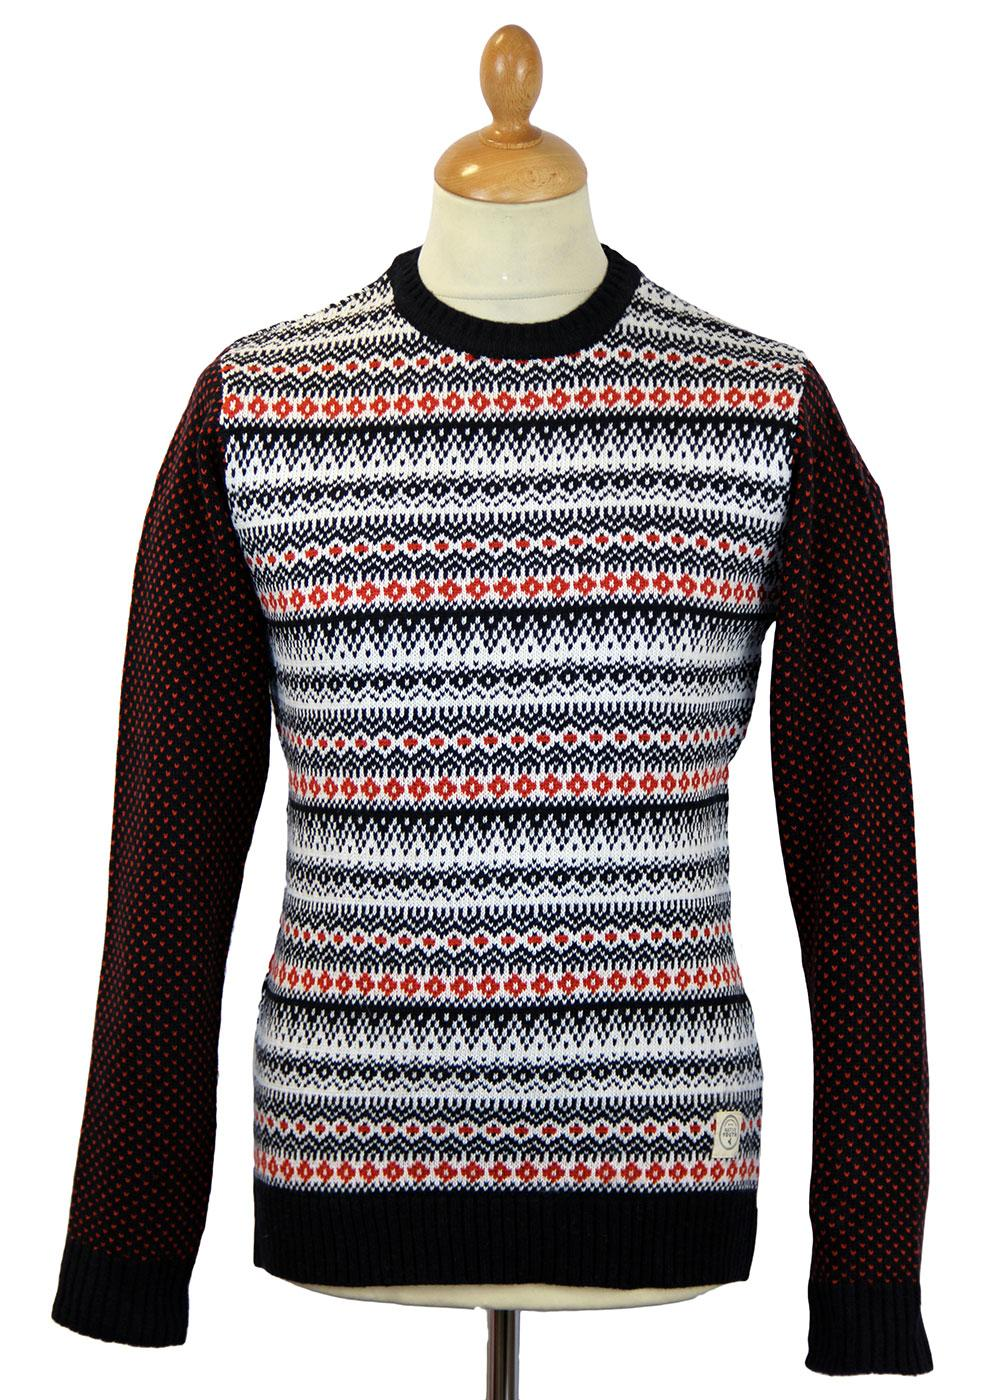 NATIVE YOUTH Retro 70s Indie Fairisle Knit Jumper